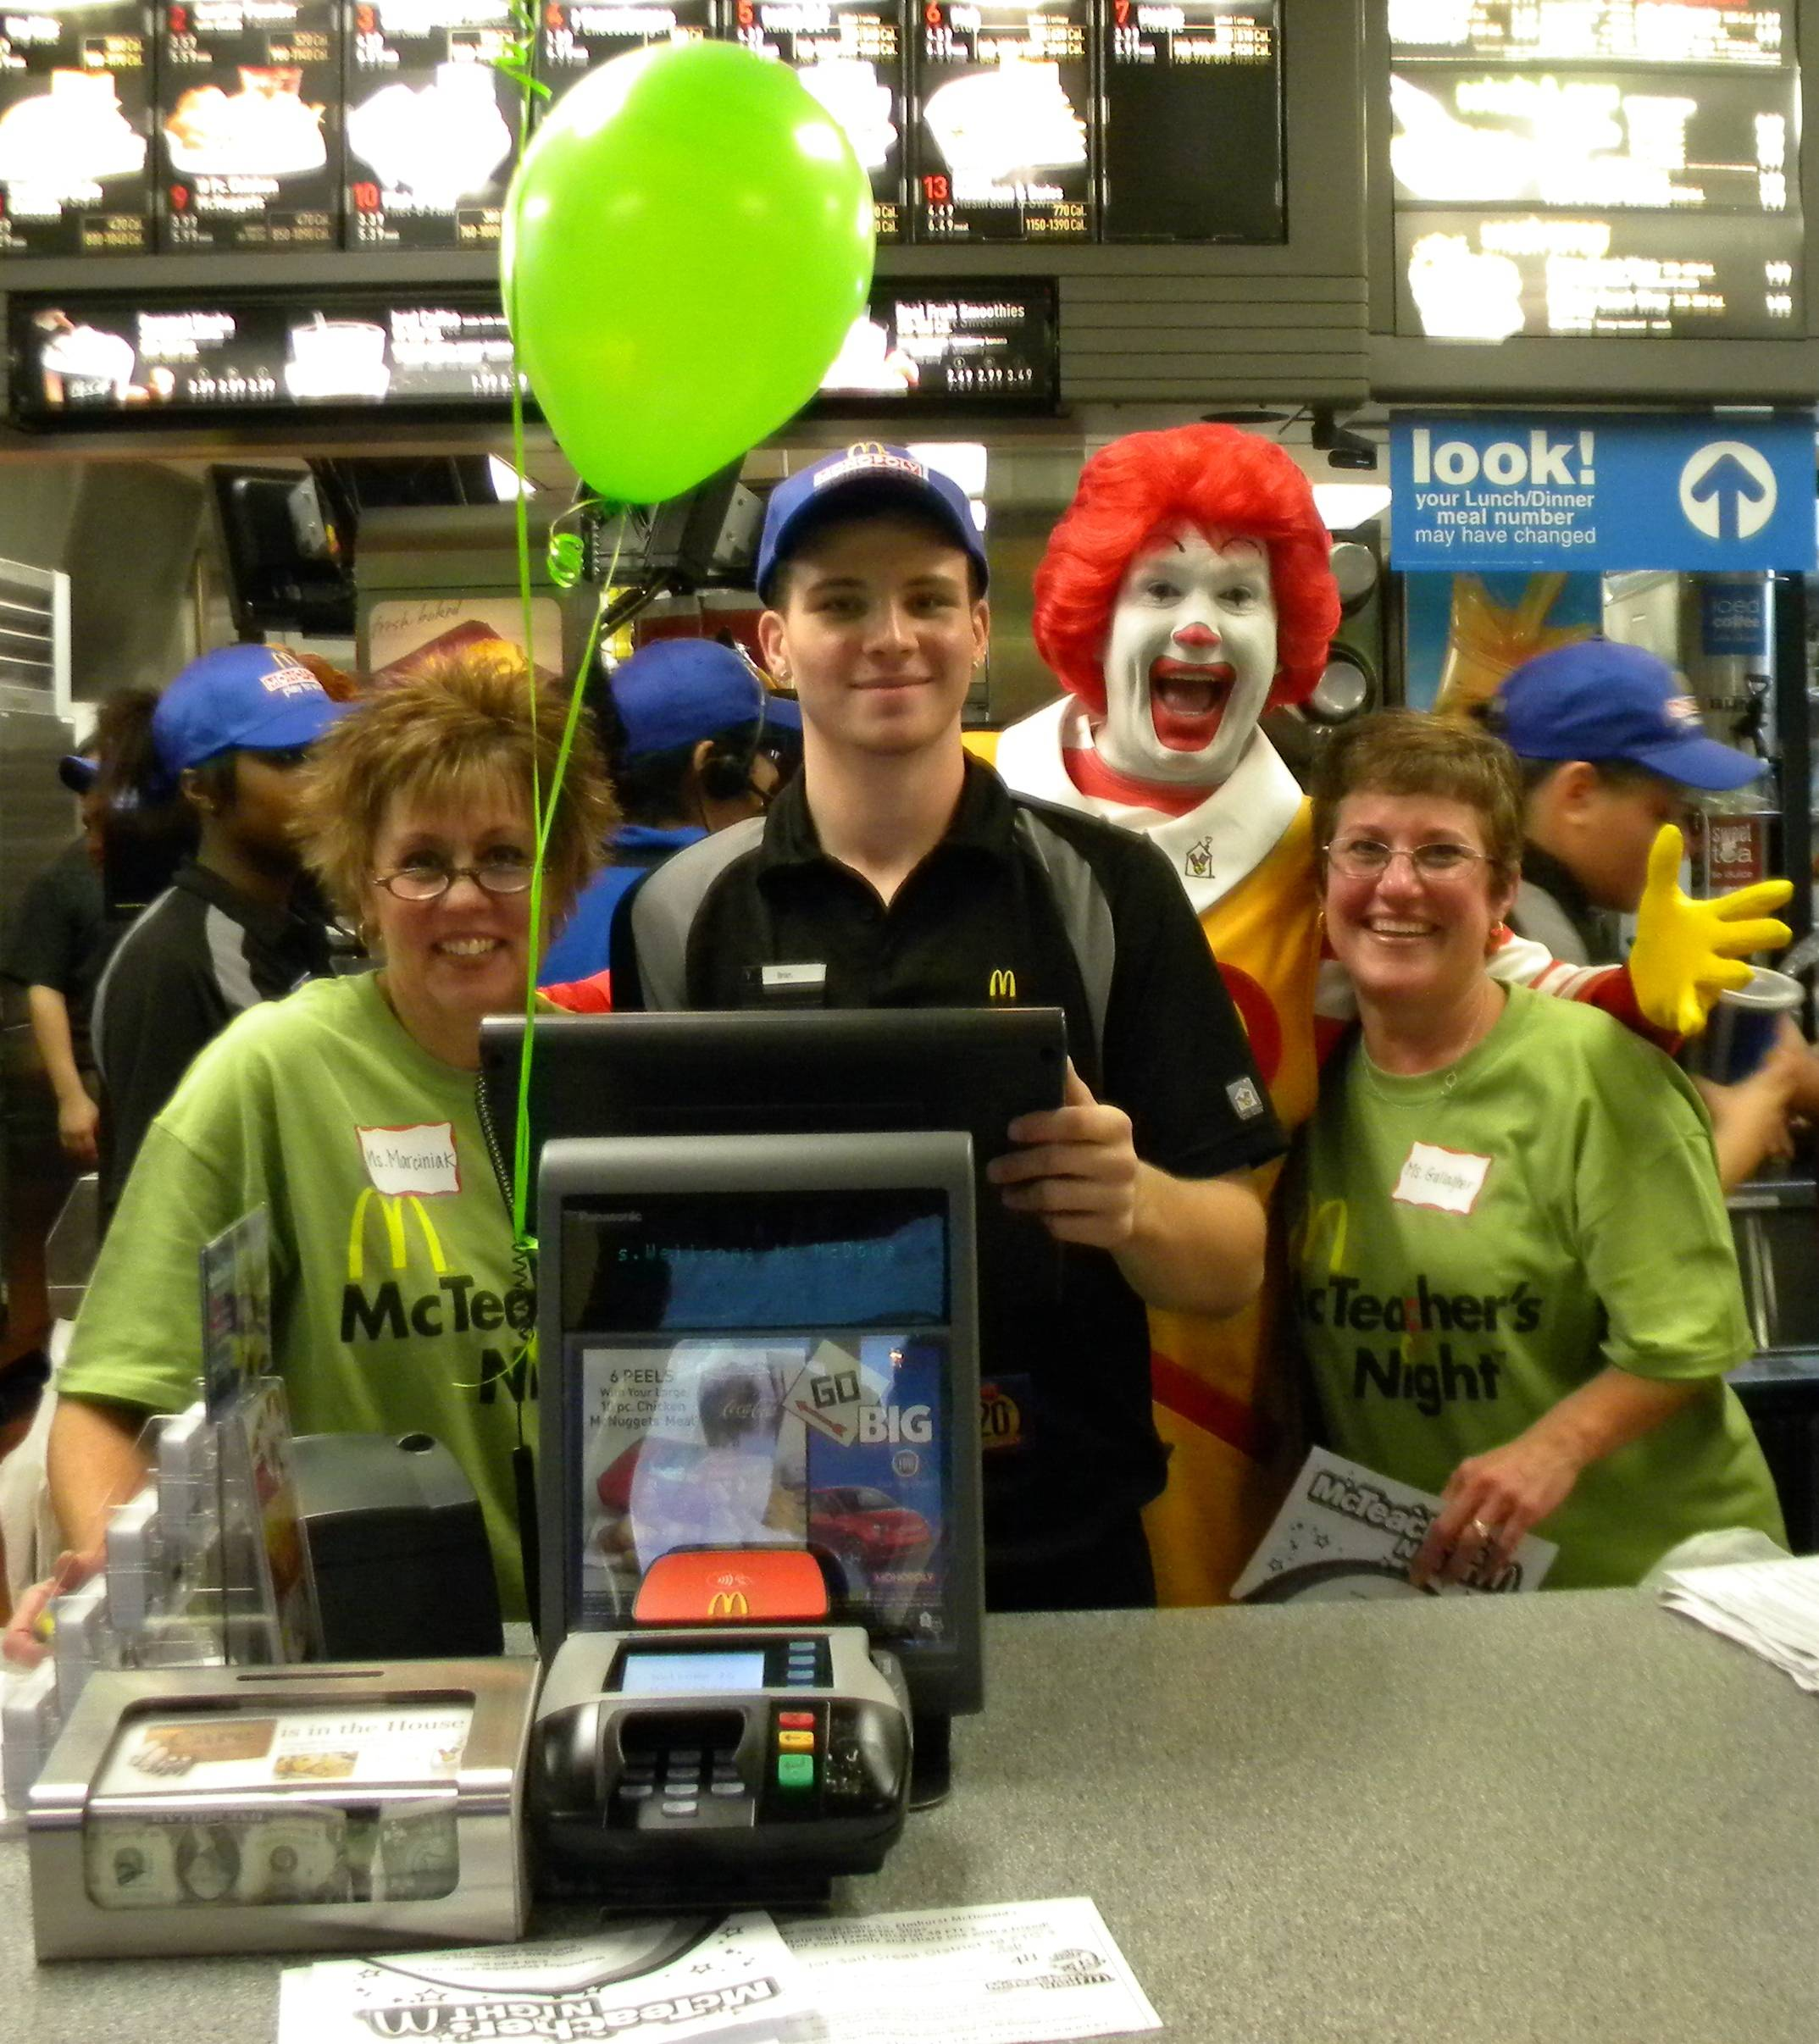 Ms. Marciniak and Ms. Gallagher all smiles with Ronald McDonald behind the counter.